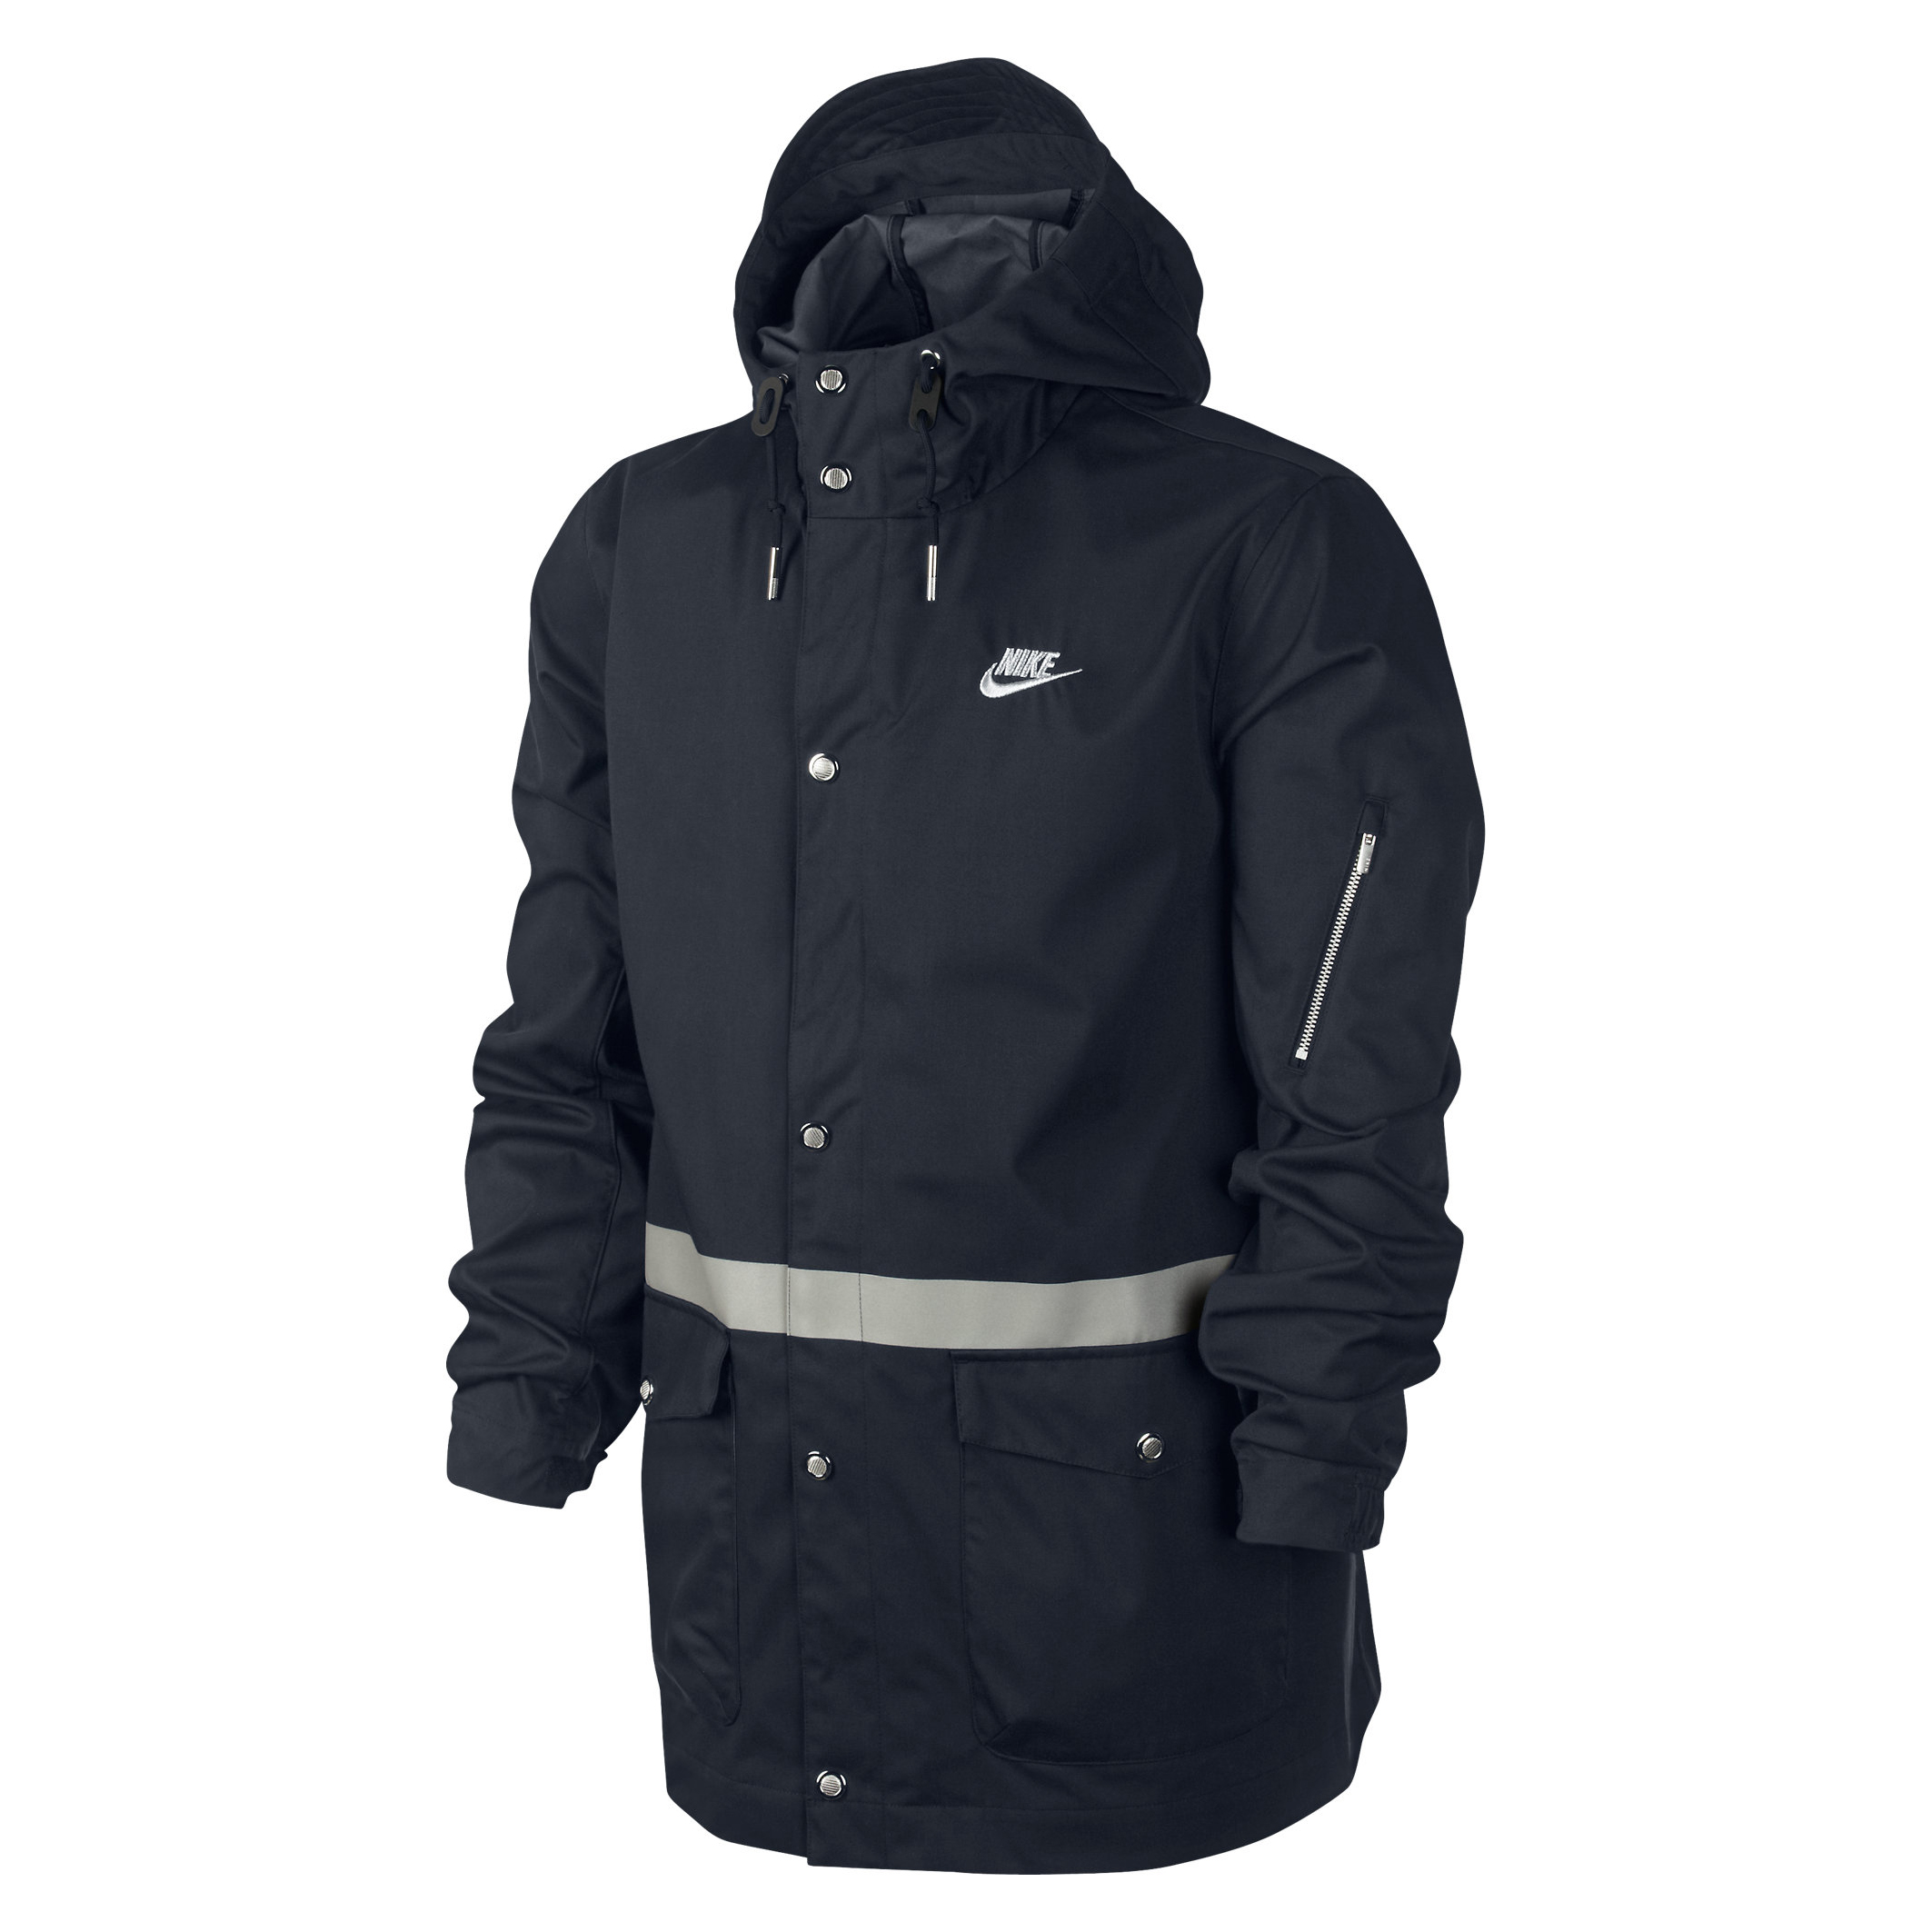 Nike CR Saturday Jacket Black